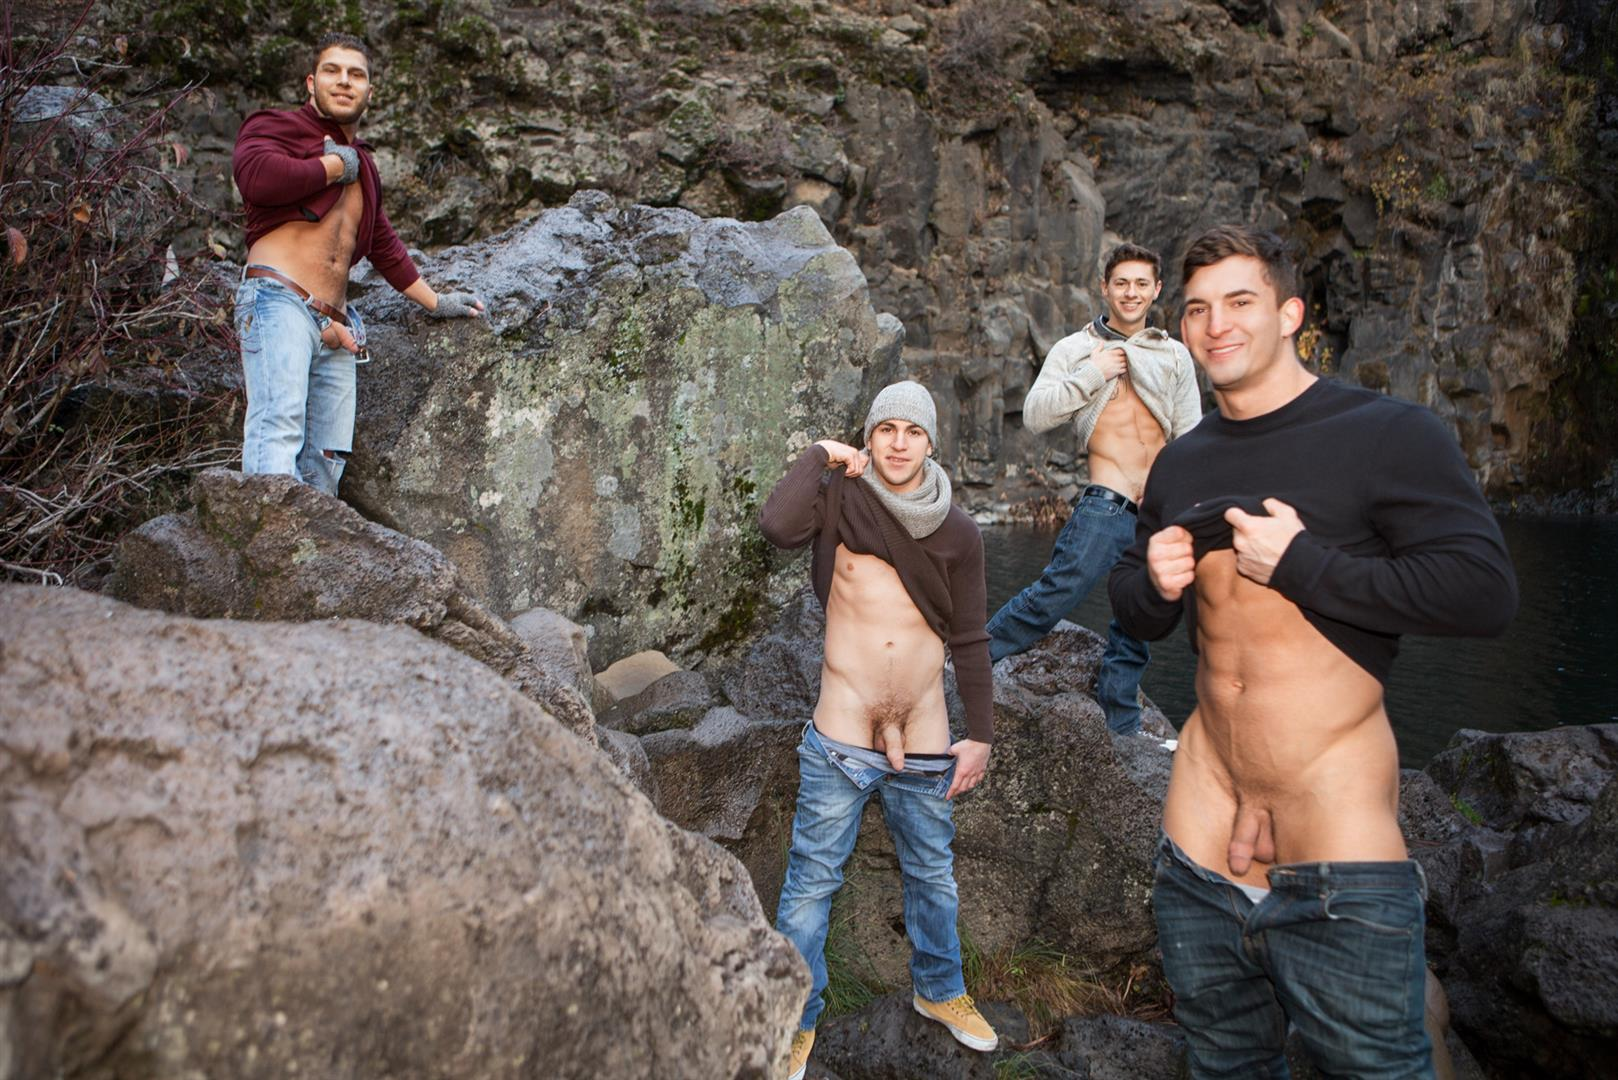 Sean-Cody-Winter-Getaway-Day-4-Big-Dick-Hunks-Fucking-Bareback-Amateur-Gay-Porn-03 Sean Cody Takes The Boys On A 8-Day Bareback Winter Getaway